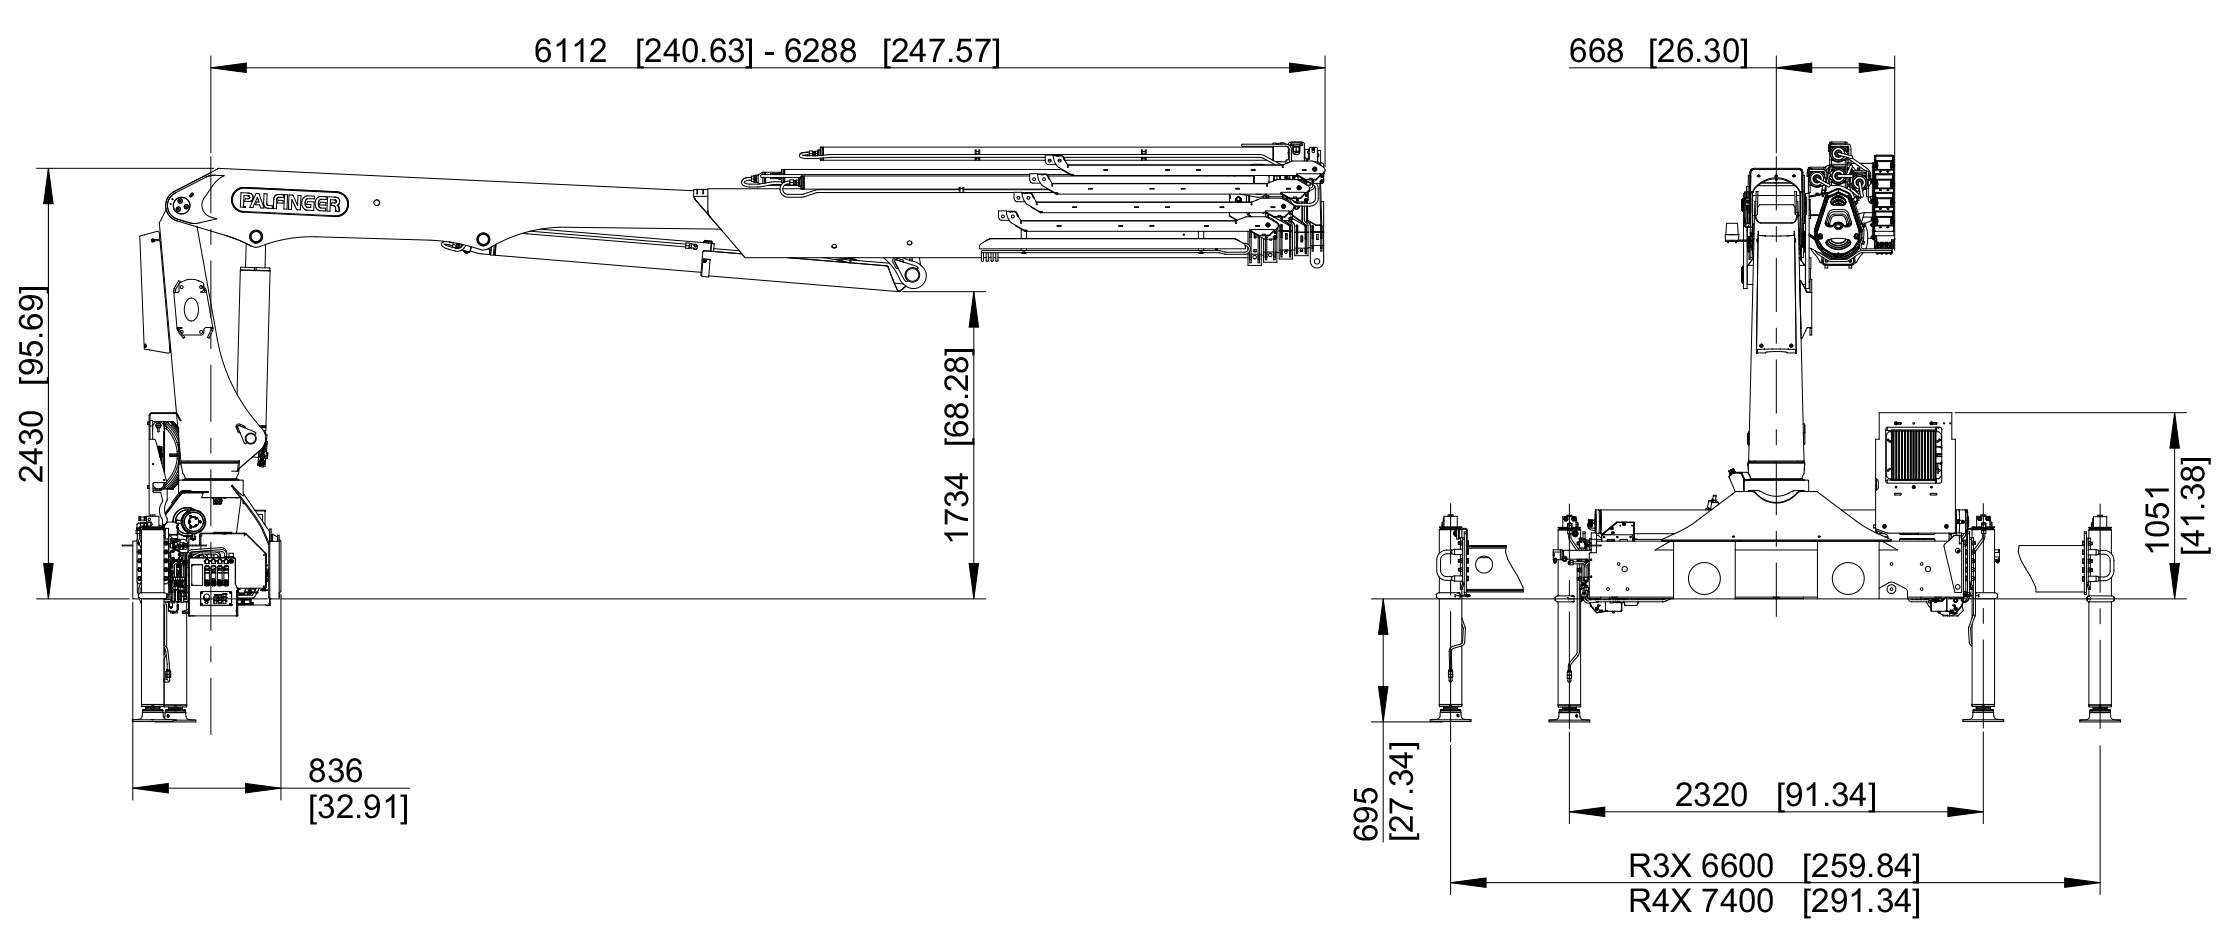 Nissan Z Motor Diagram Product Wiring Diagrams For Free Crane Ke 28299171456 92a8ce2473 K 1 Besides 2013 03 12 18 21 48 Furthermore 2009 26 010753